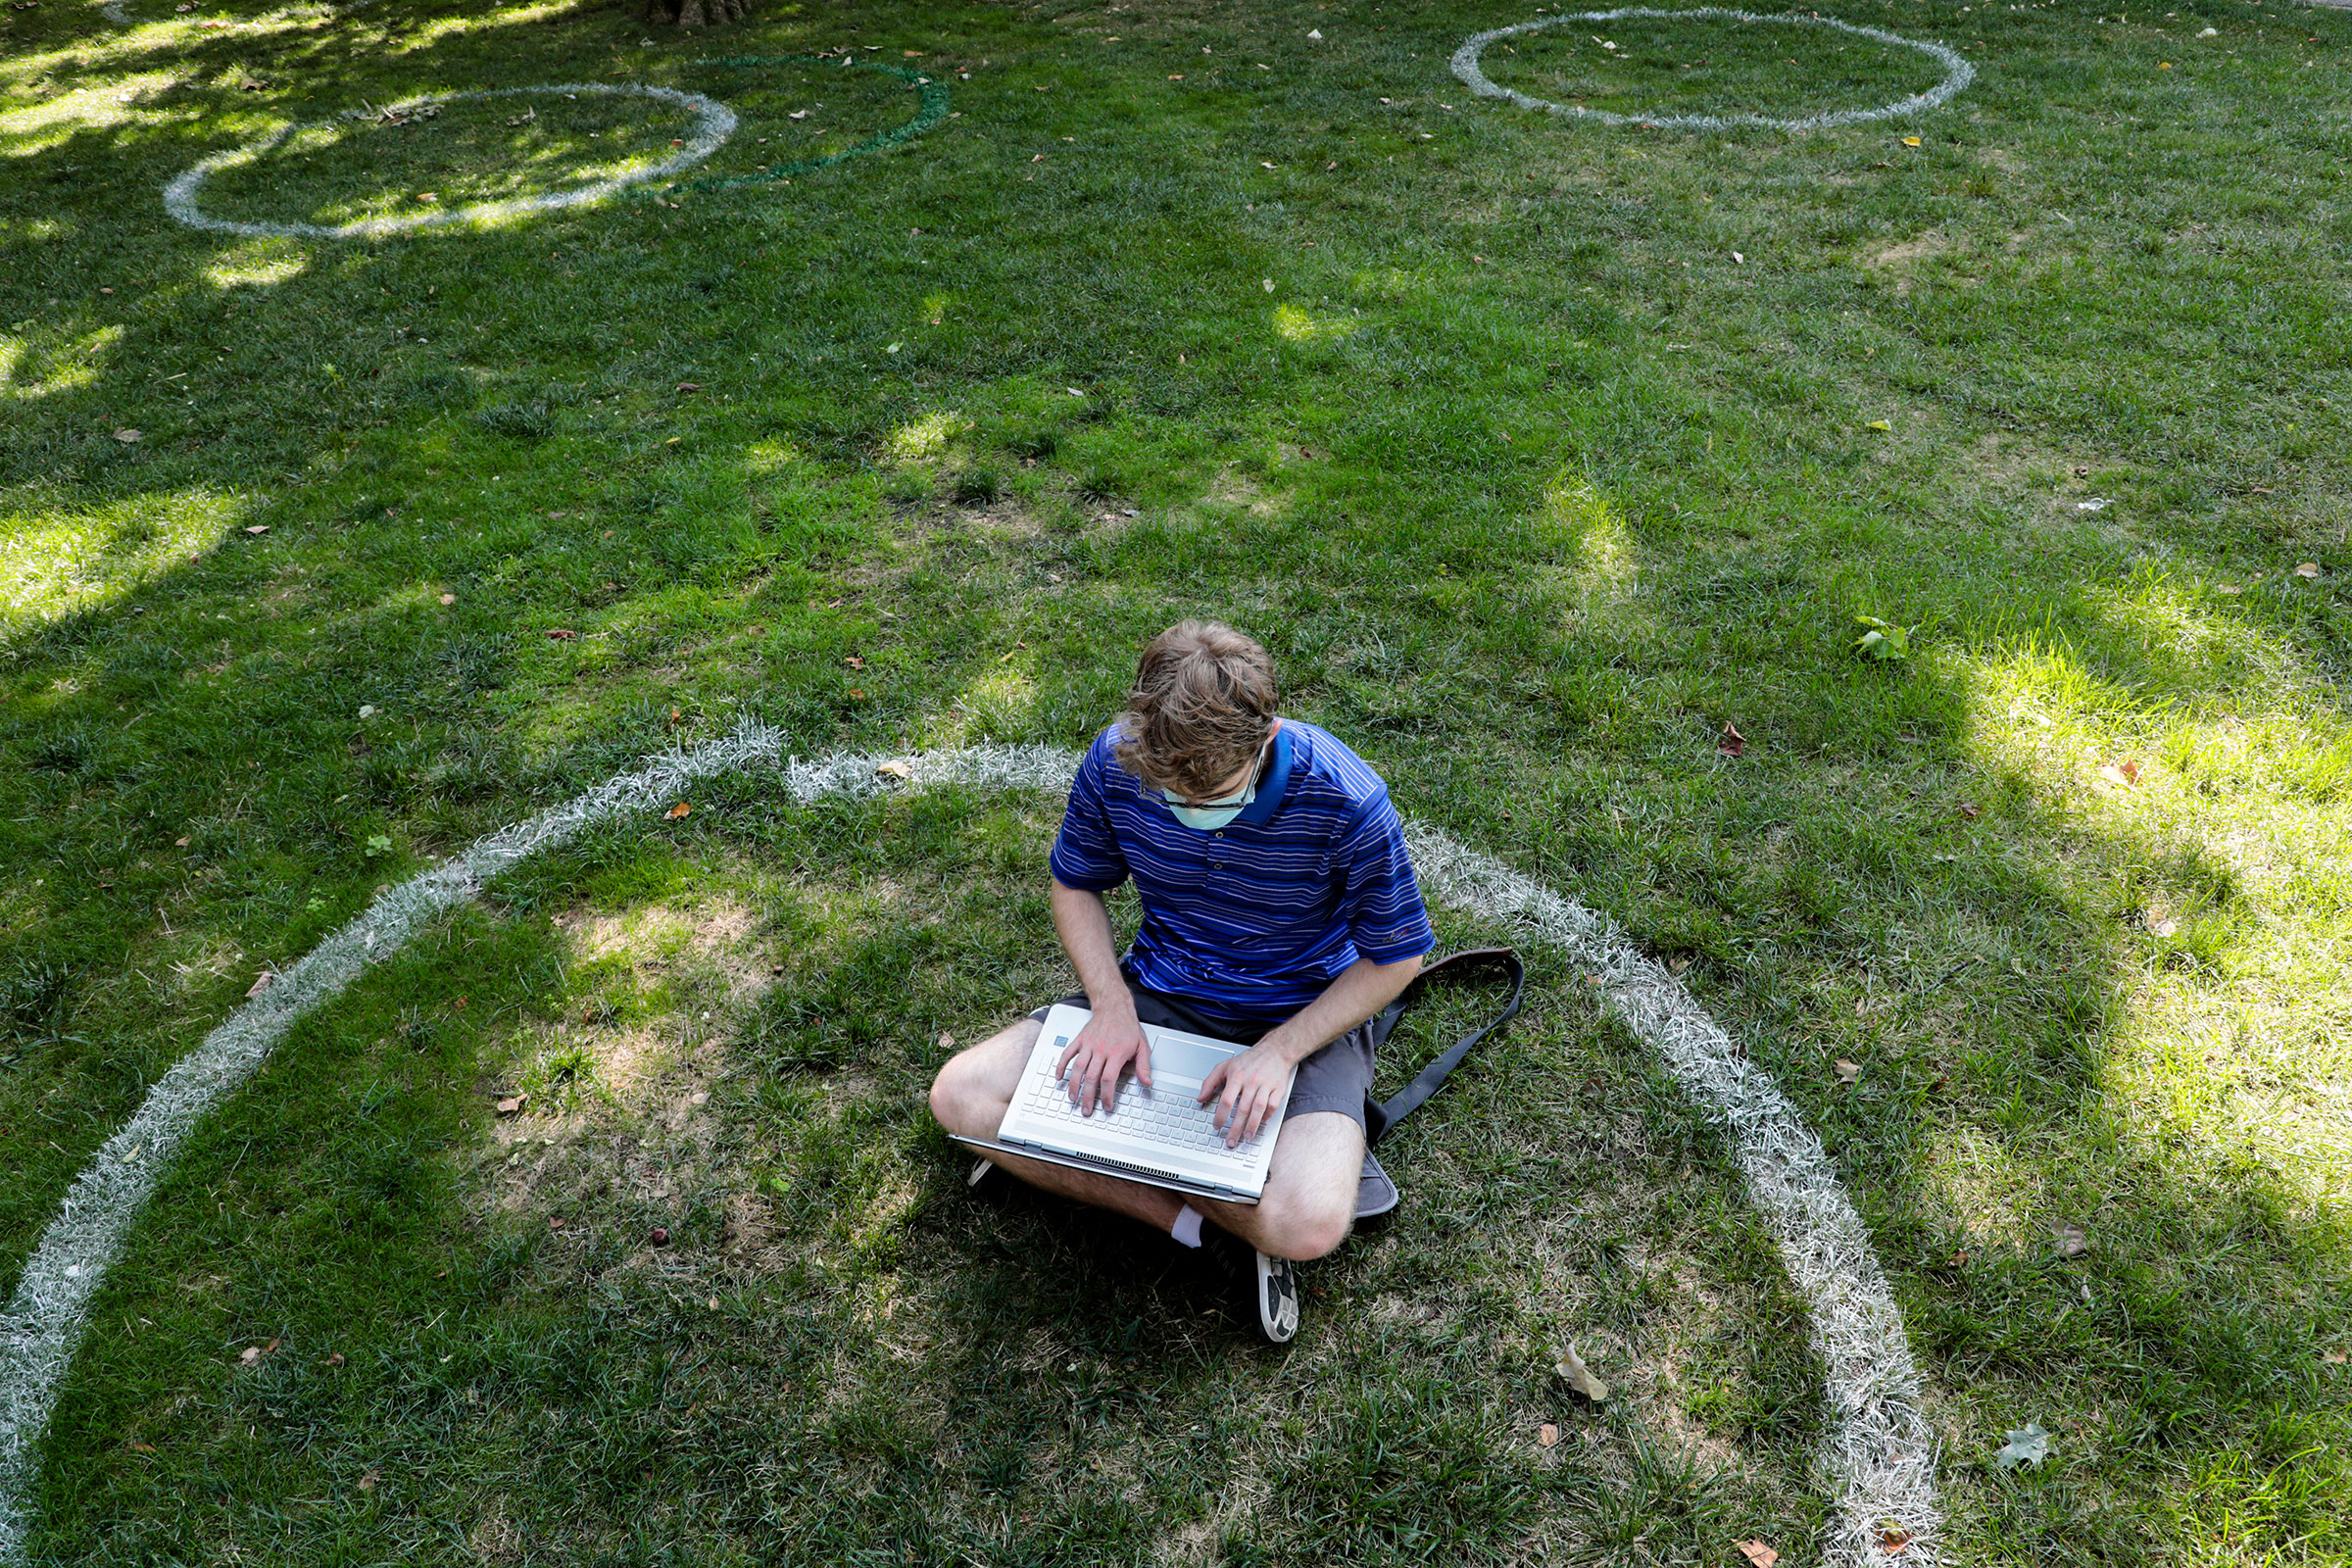 Logan Armstrong, a Cincinnati junior, works while sitting inside a painted circle on the lawn of the Oval during the first day of fall classes on at Ohio State University on Aug. 25, 2020.